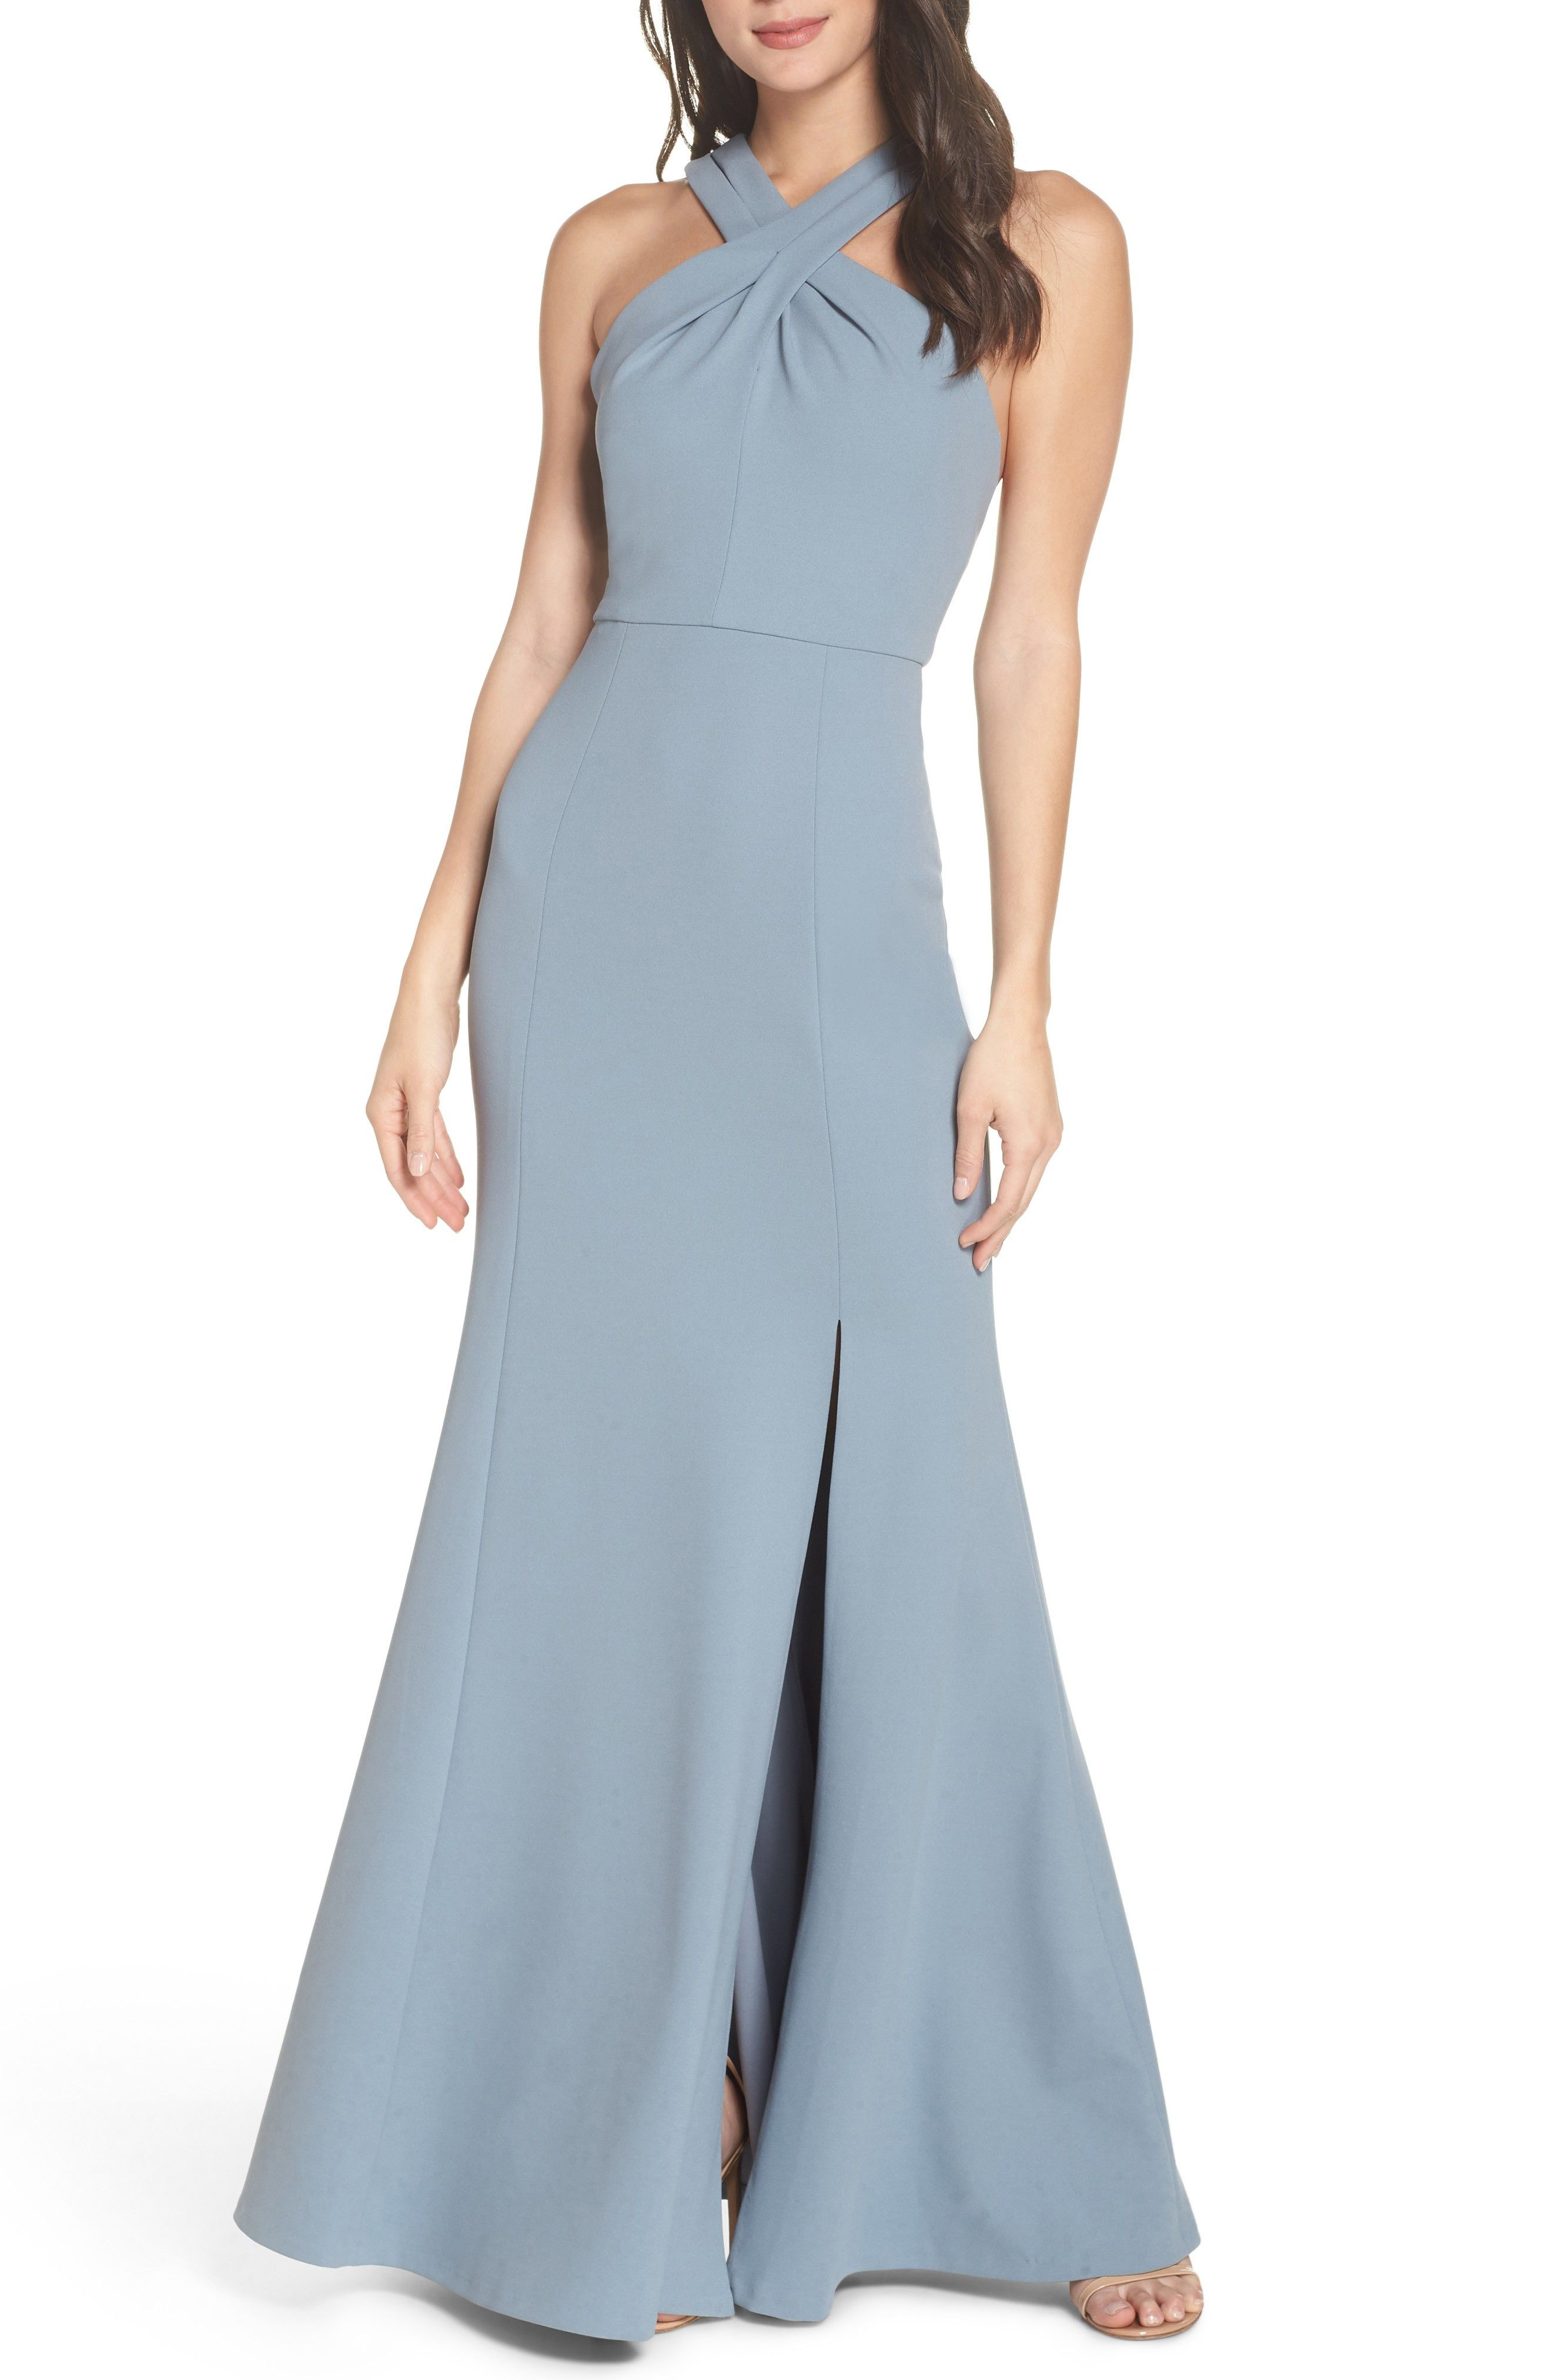 aba0f840a4 Mayan blue Jenny Yoo bridesmaid dress - Kayleigh Cross Front Crepe Knit Gown  -  ad  jennyyoo  bridesmaids  bluewedding  bluedress